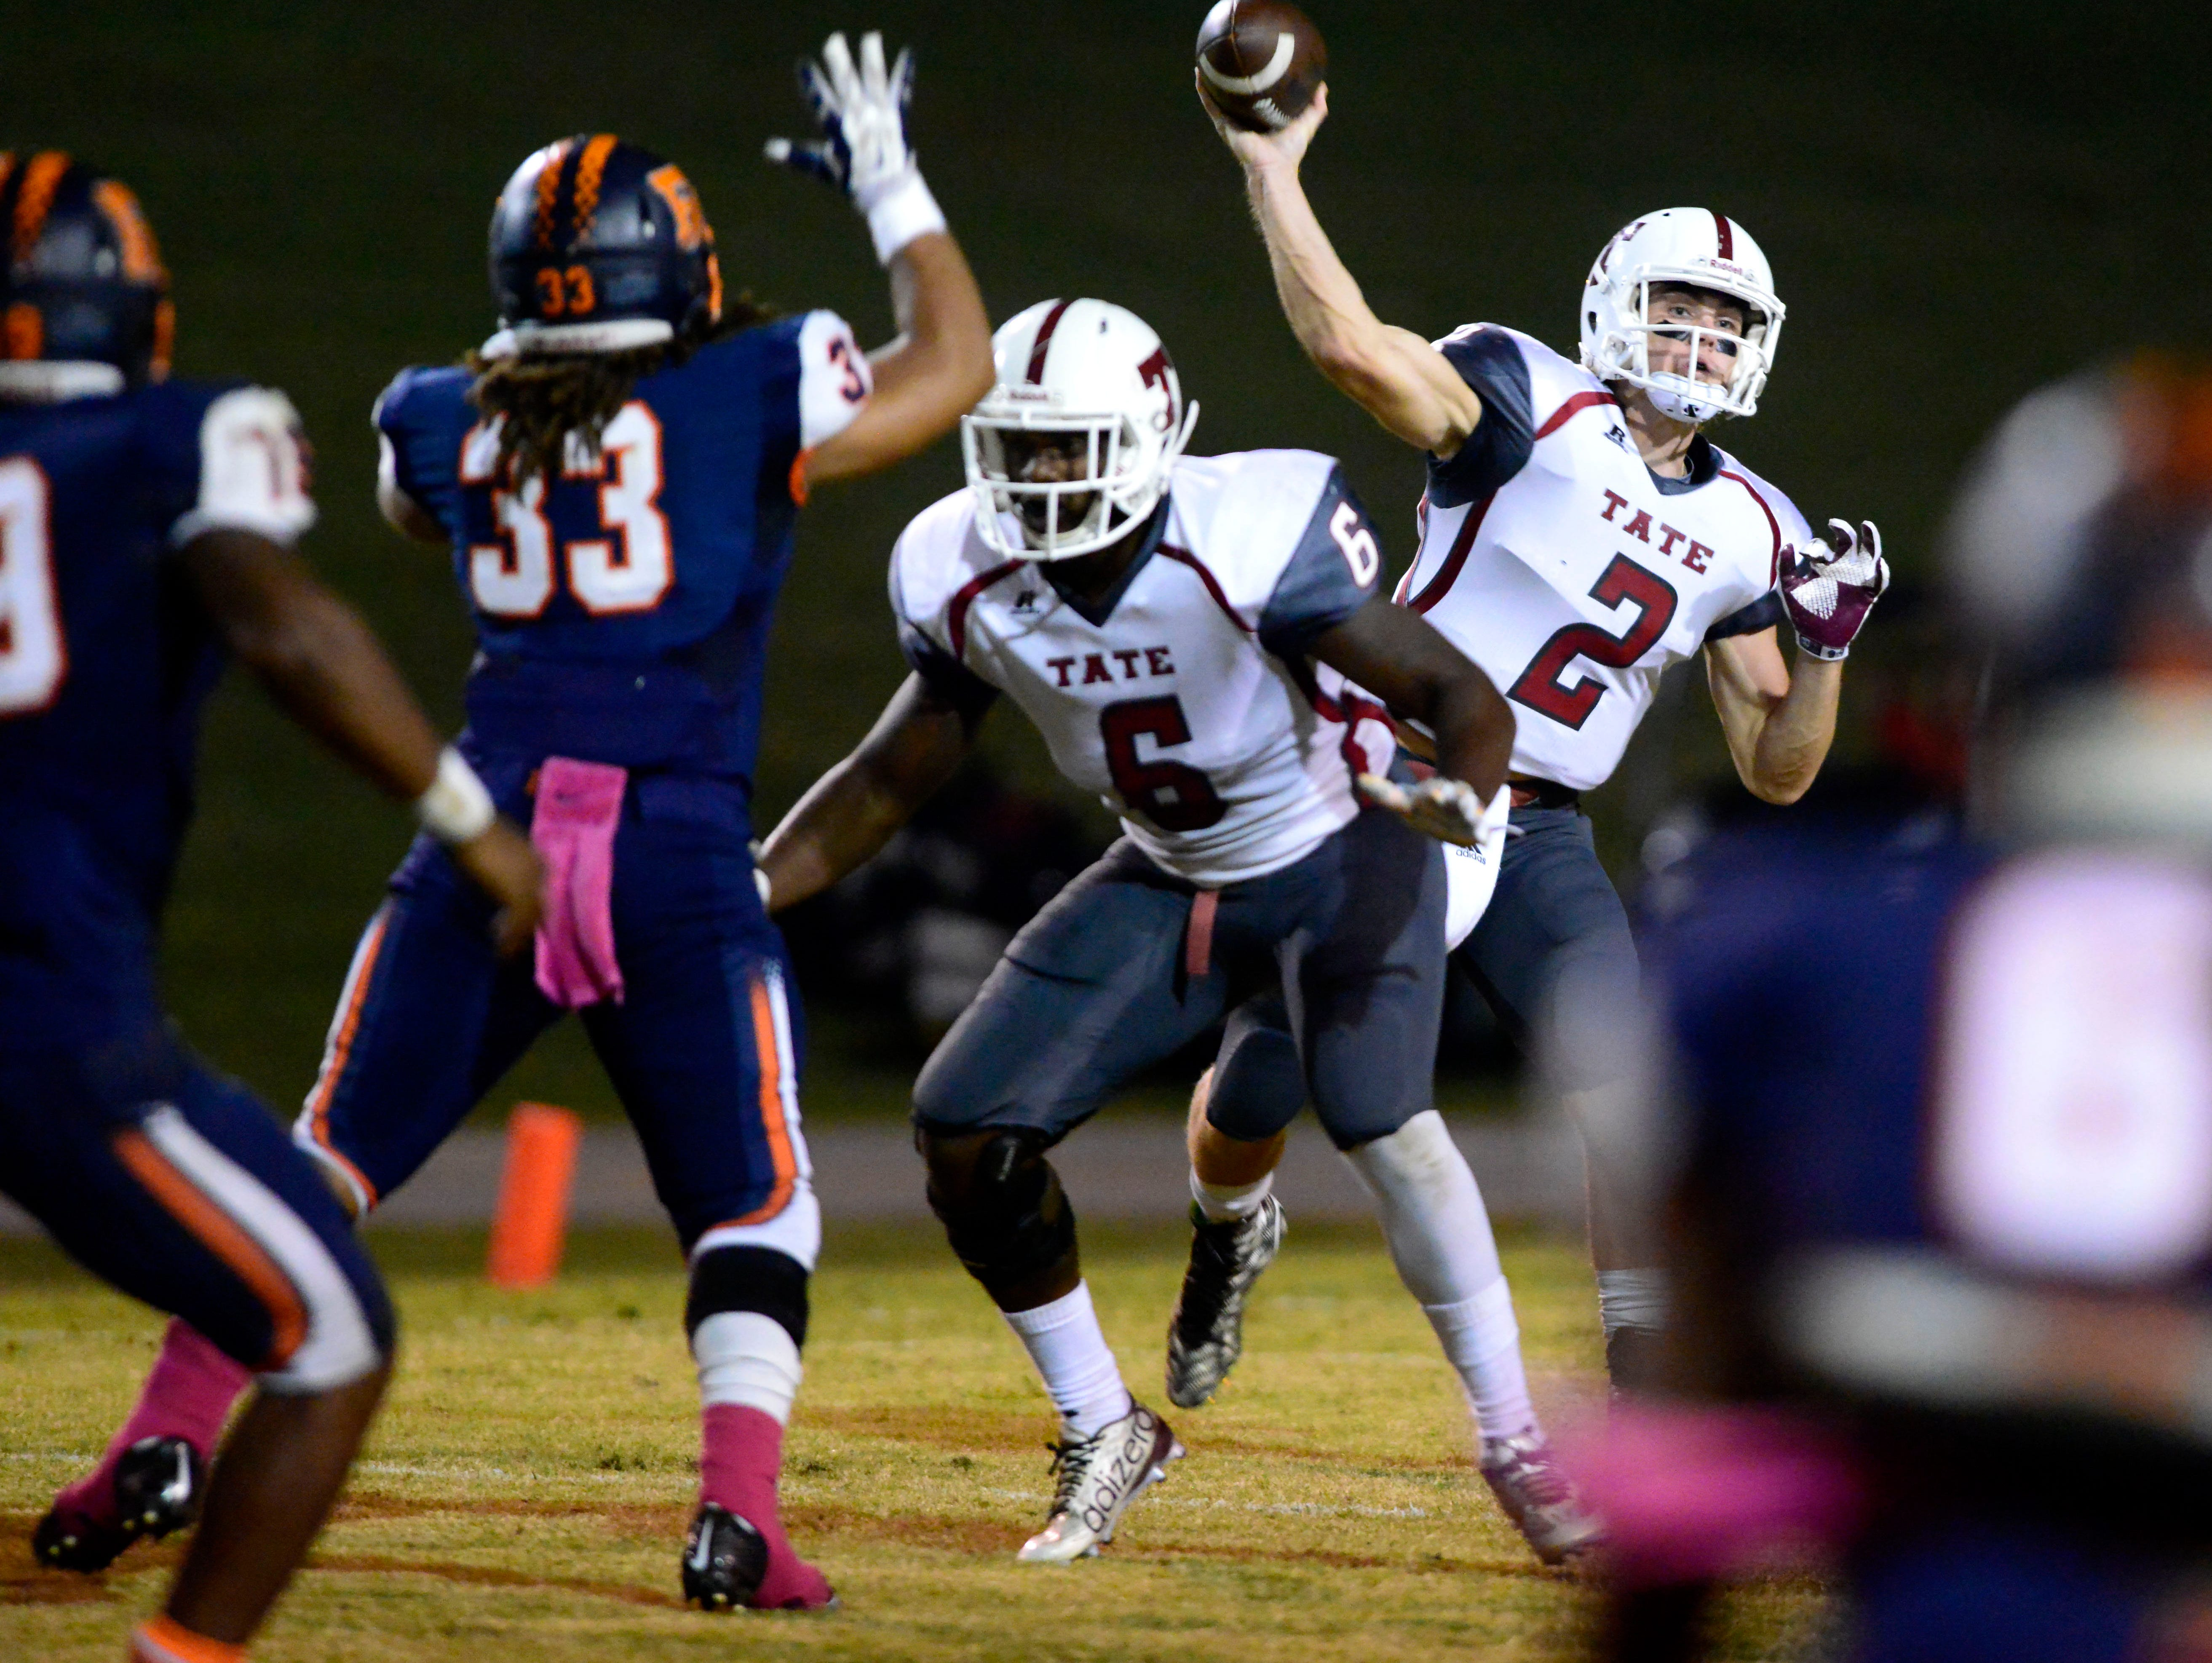 Tate High School quarterback Sawyer Smith locks on to a receiver Friday in a game against Escambia High. Tate beat Escambia 35-14.